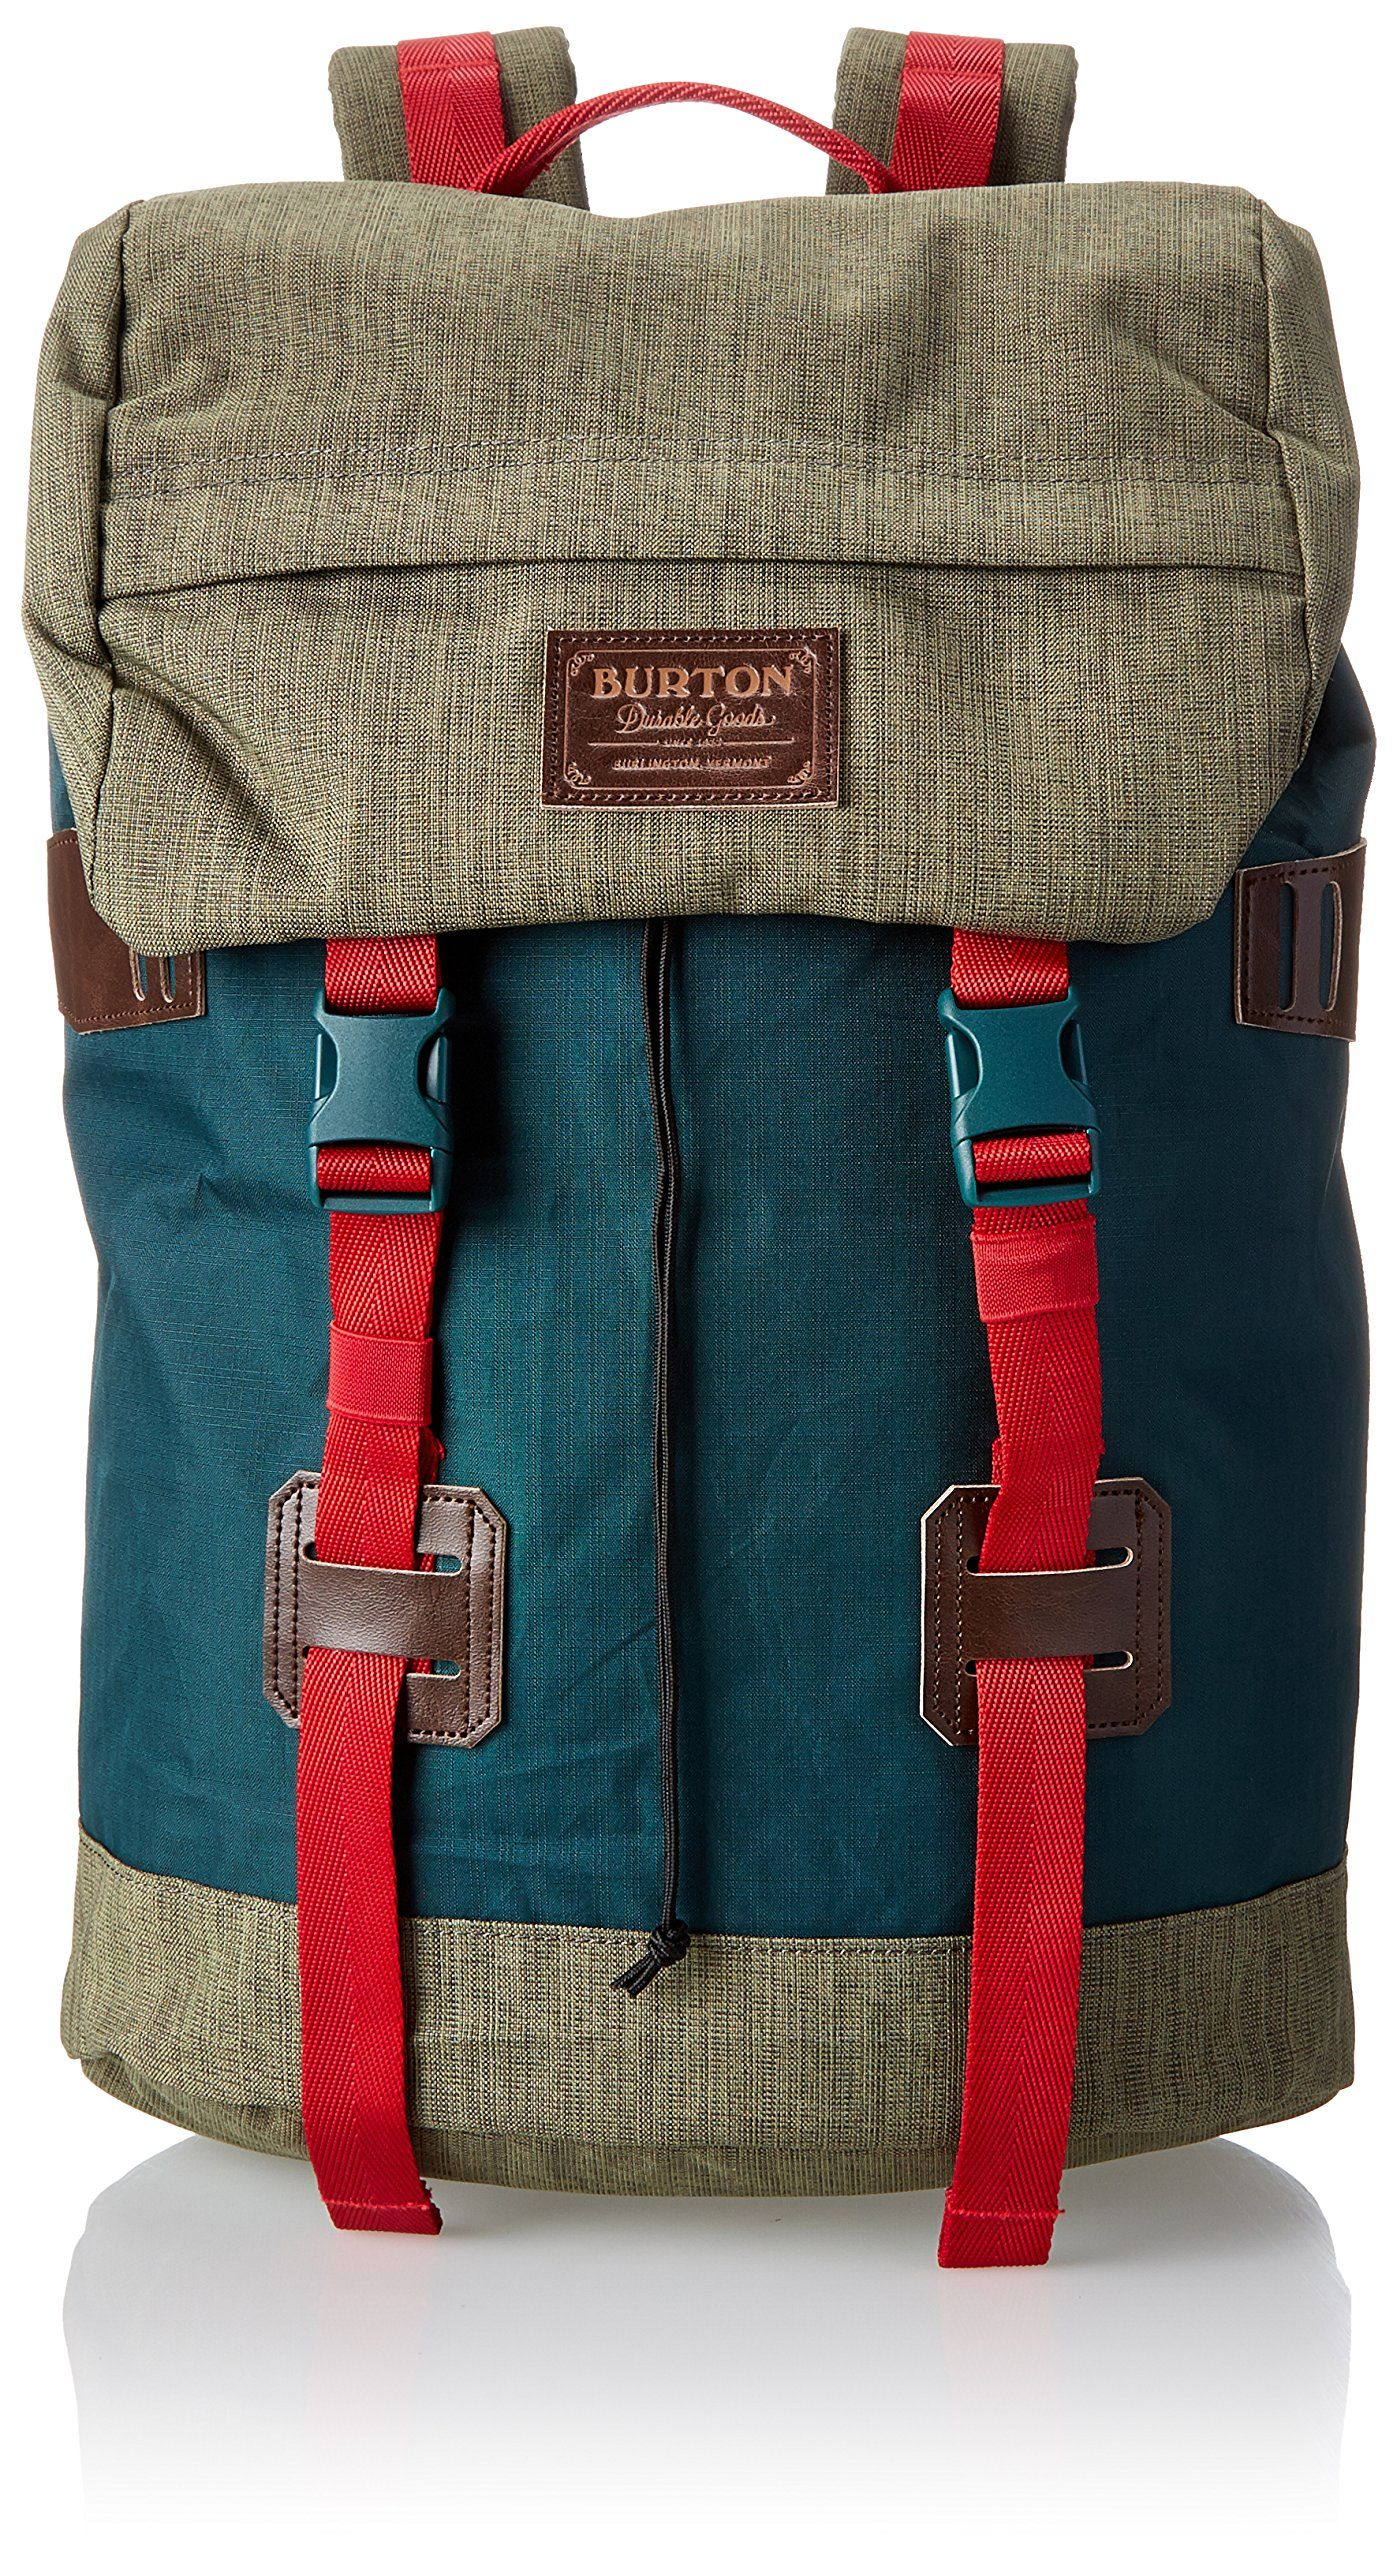 BURTON Tinder Pack. Great for hiking and everyday use.  dd98dd389144e